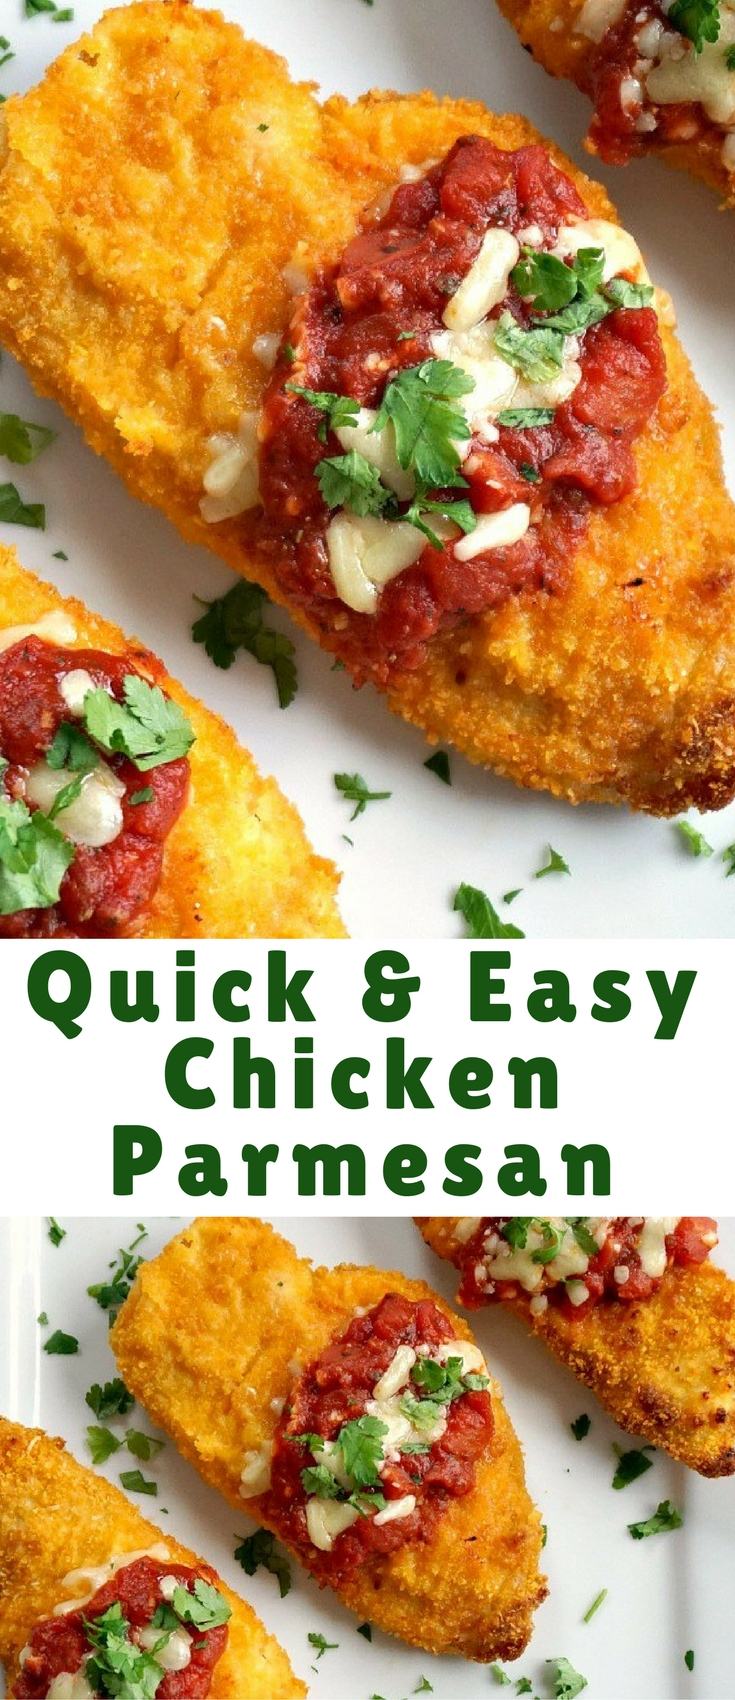 Quick easy chicken parmesan is one of those 30-minute recipes that go well with all the members of the family. A lot healthier than the fried version, but as crispy and tasty. It really ticks all boxes when it comes to a quick midweek meal.